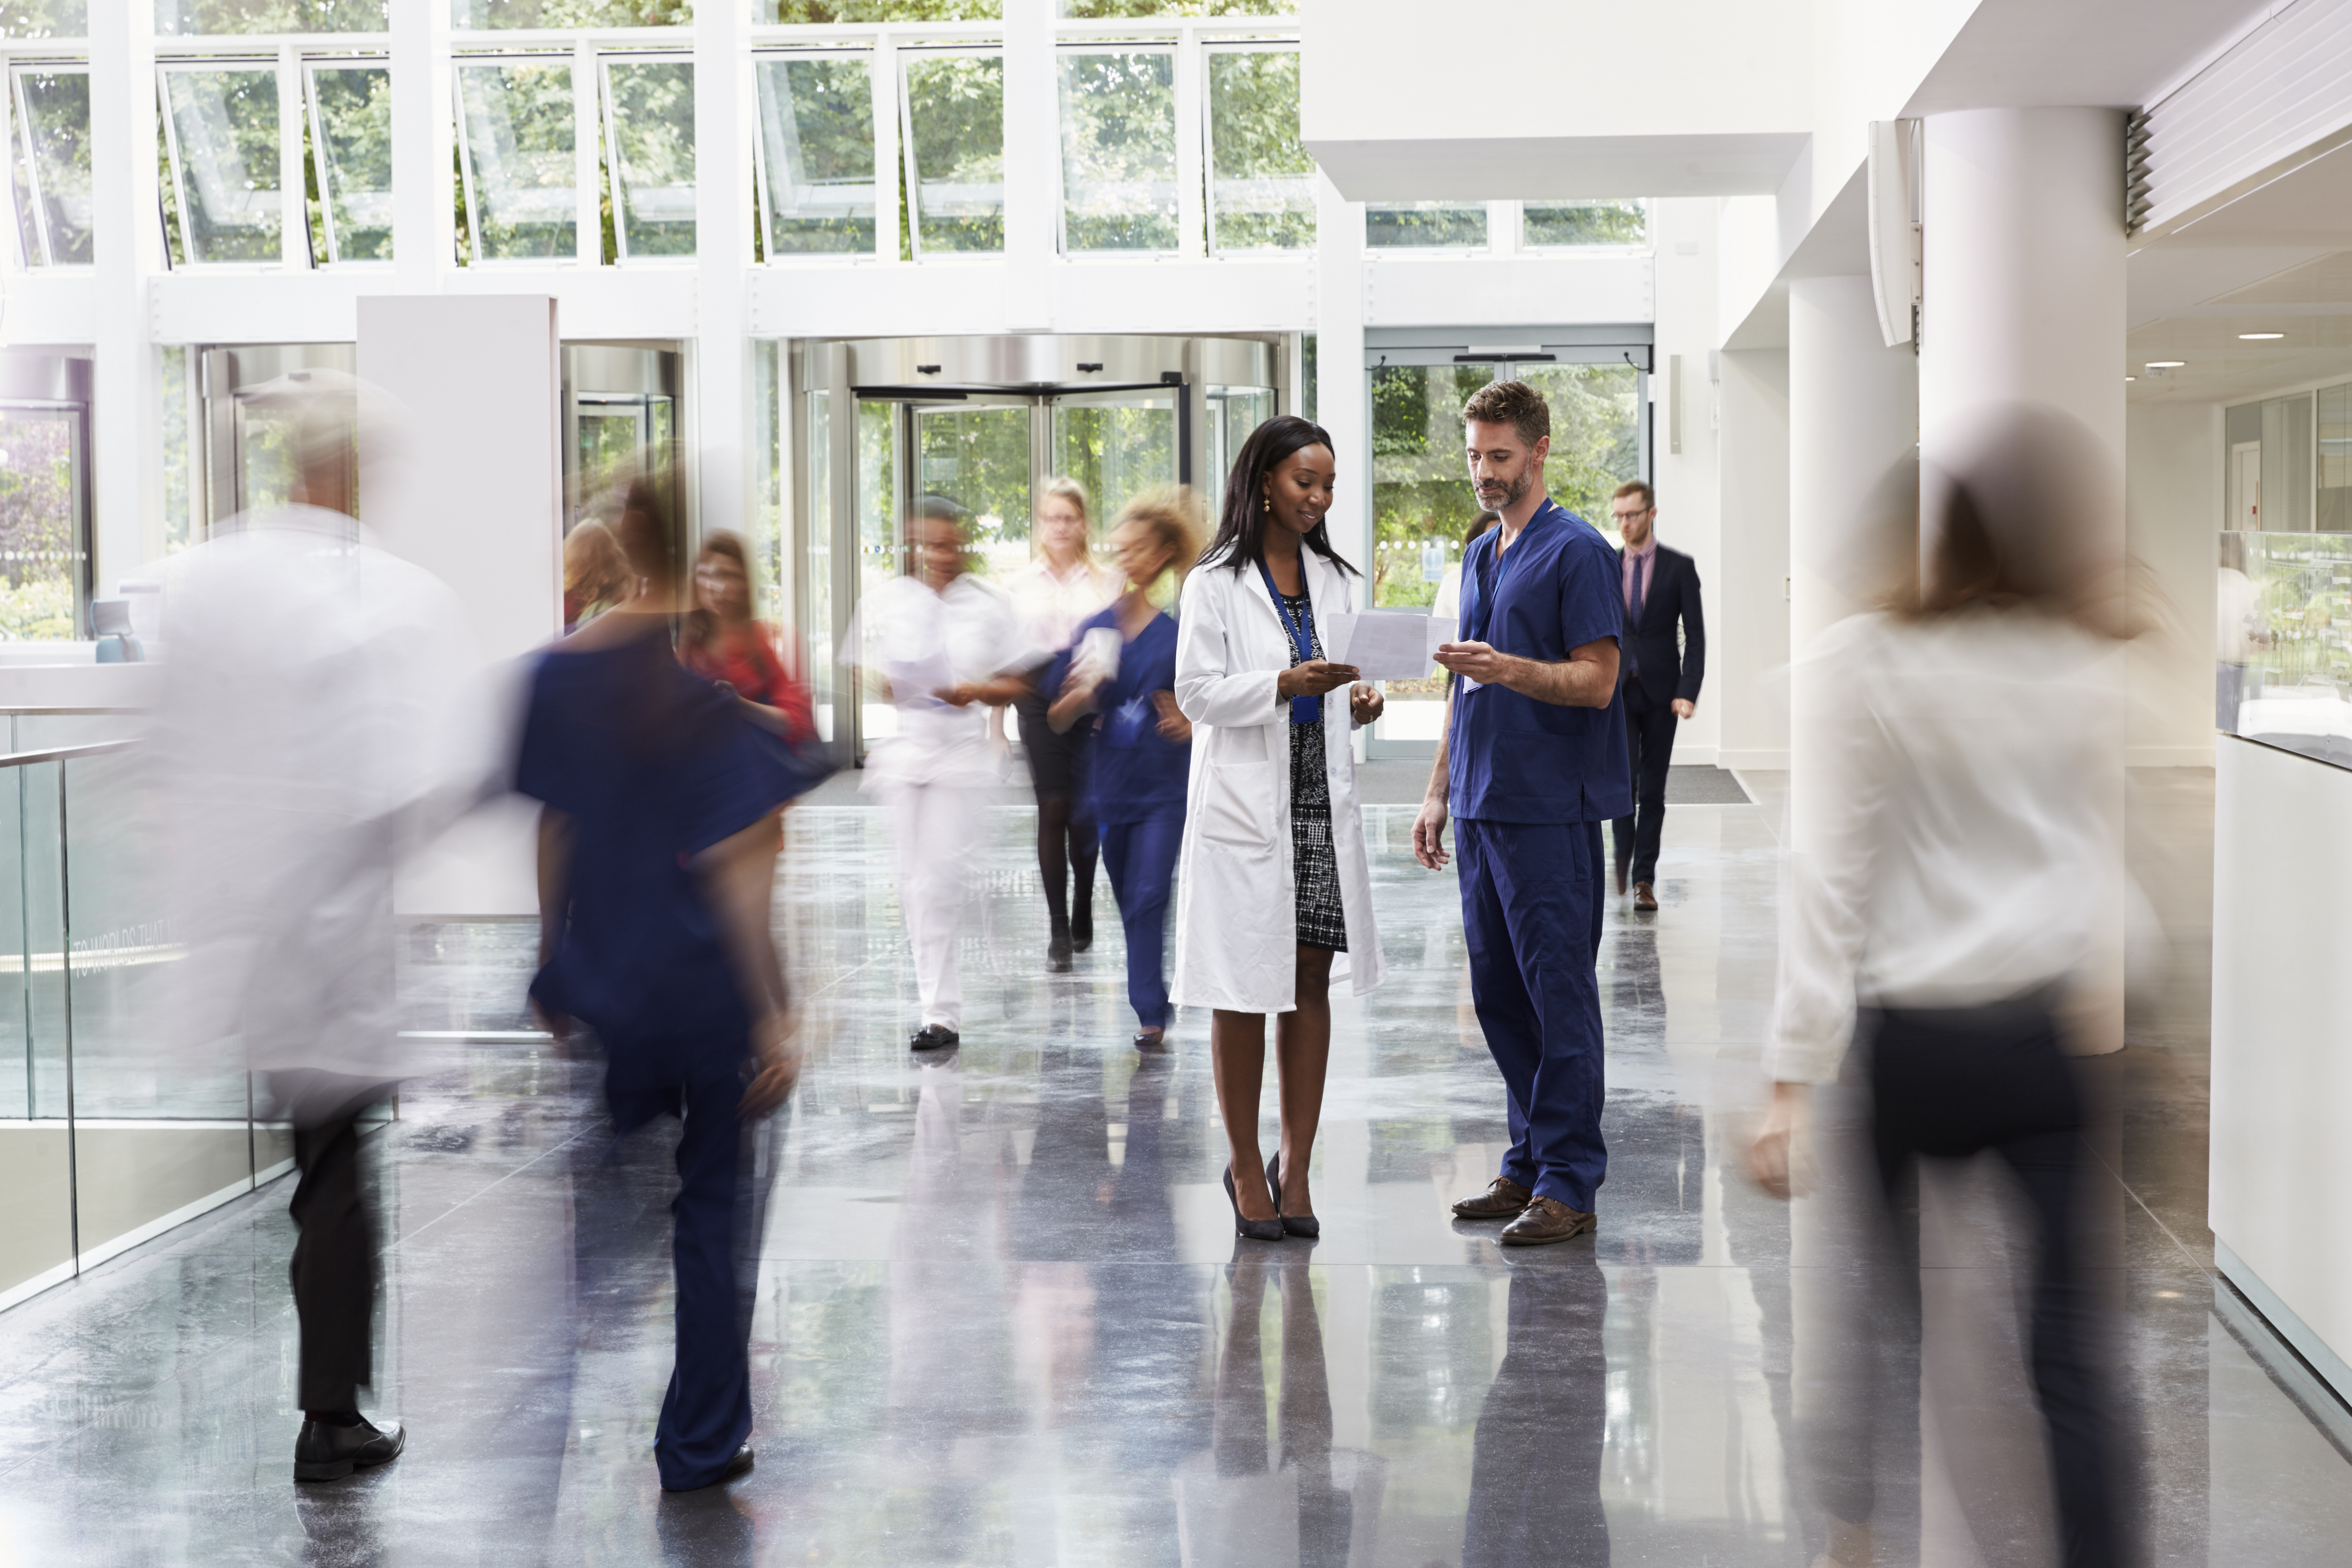 Staff In Busy Lobby Area Of Modern Hospital